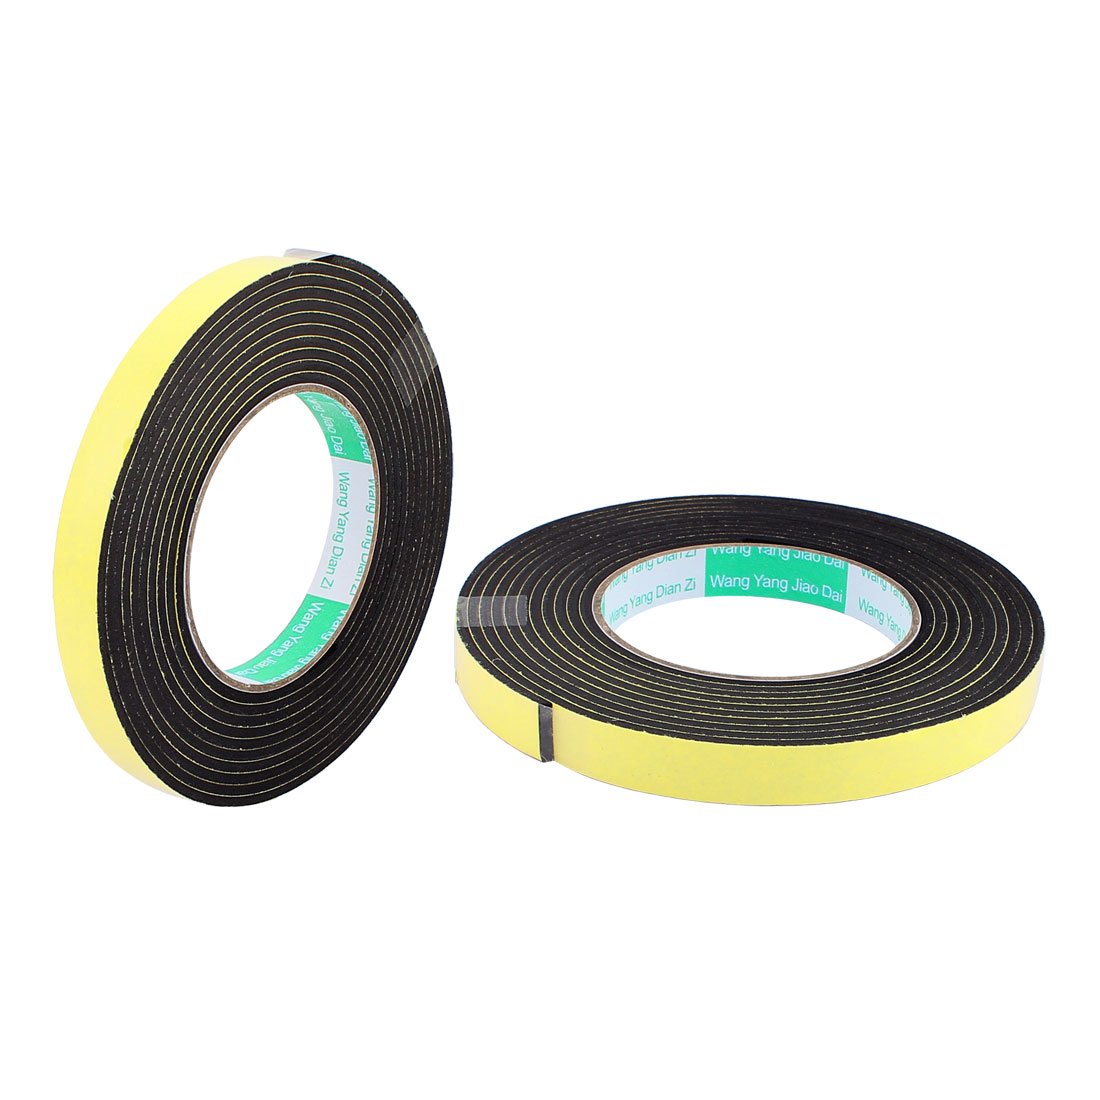 2 Pcs 1.5CM Width 4M Length 3MM Thick Single Sided Sealing Shockproof Sponge Tape